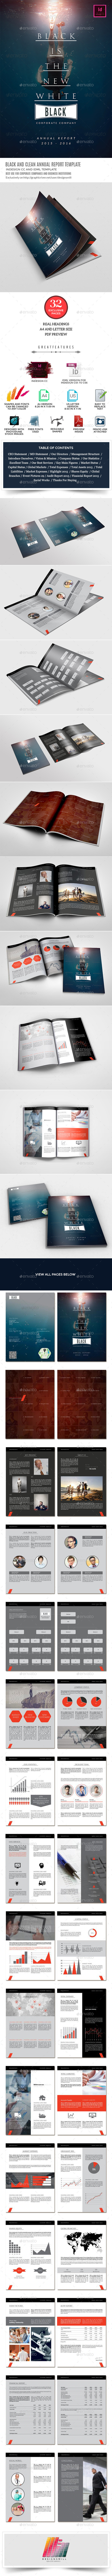 Black and Clean Corporate Annual Report Template